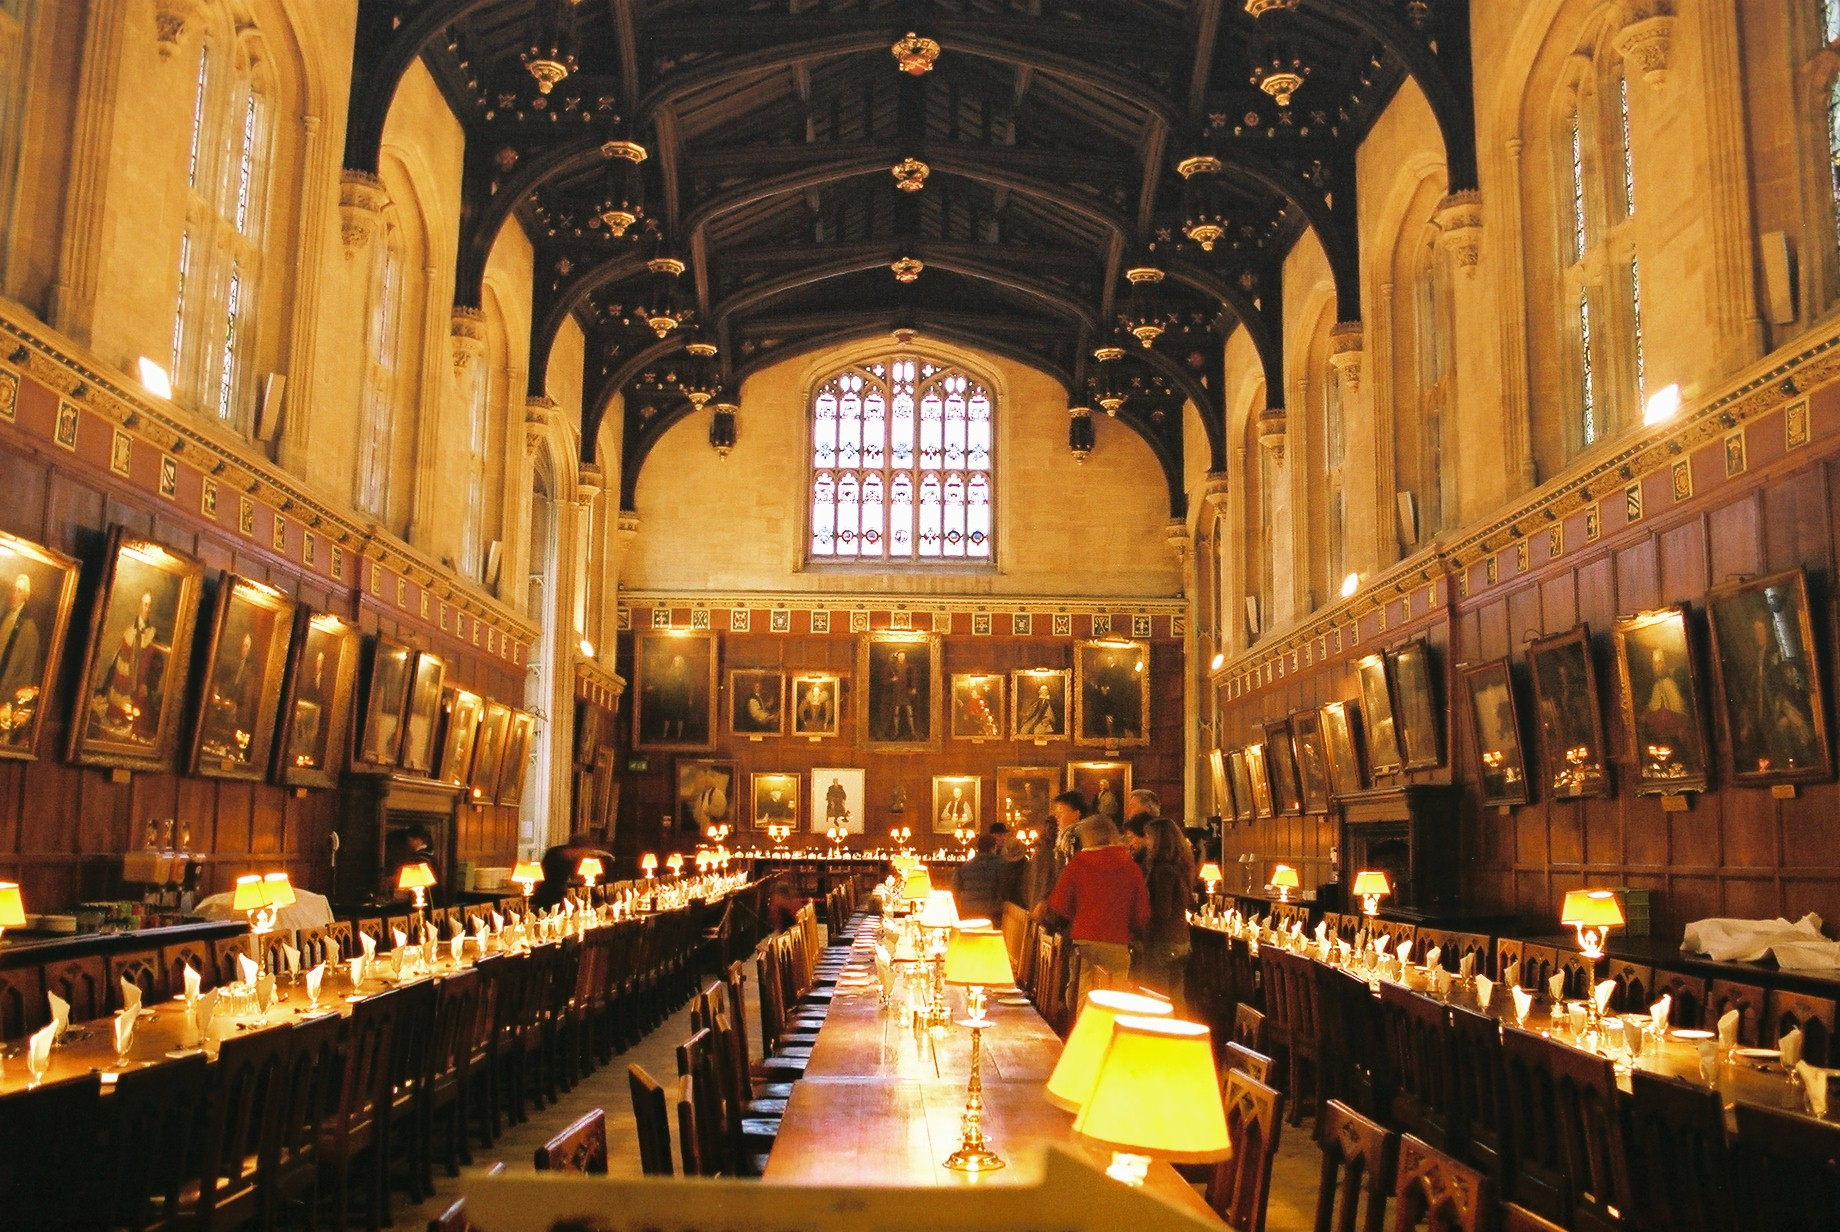 Harry Potter in the Christ Church College hall - Fictional movie locations